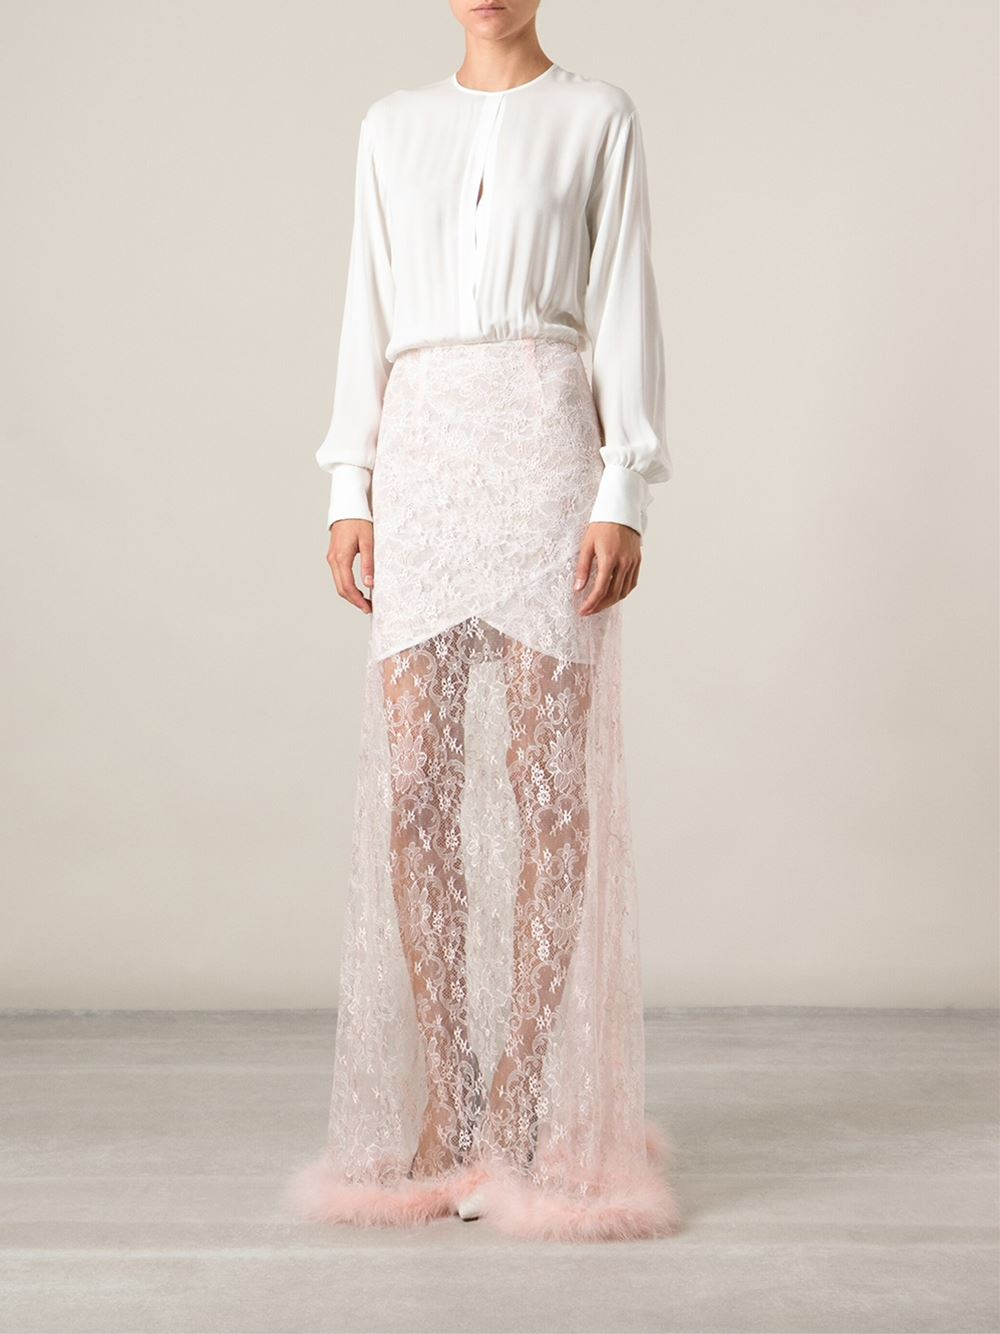 Alessandra Rich Layered Lace Faux Fur Trimmed Long Dress